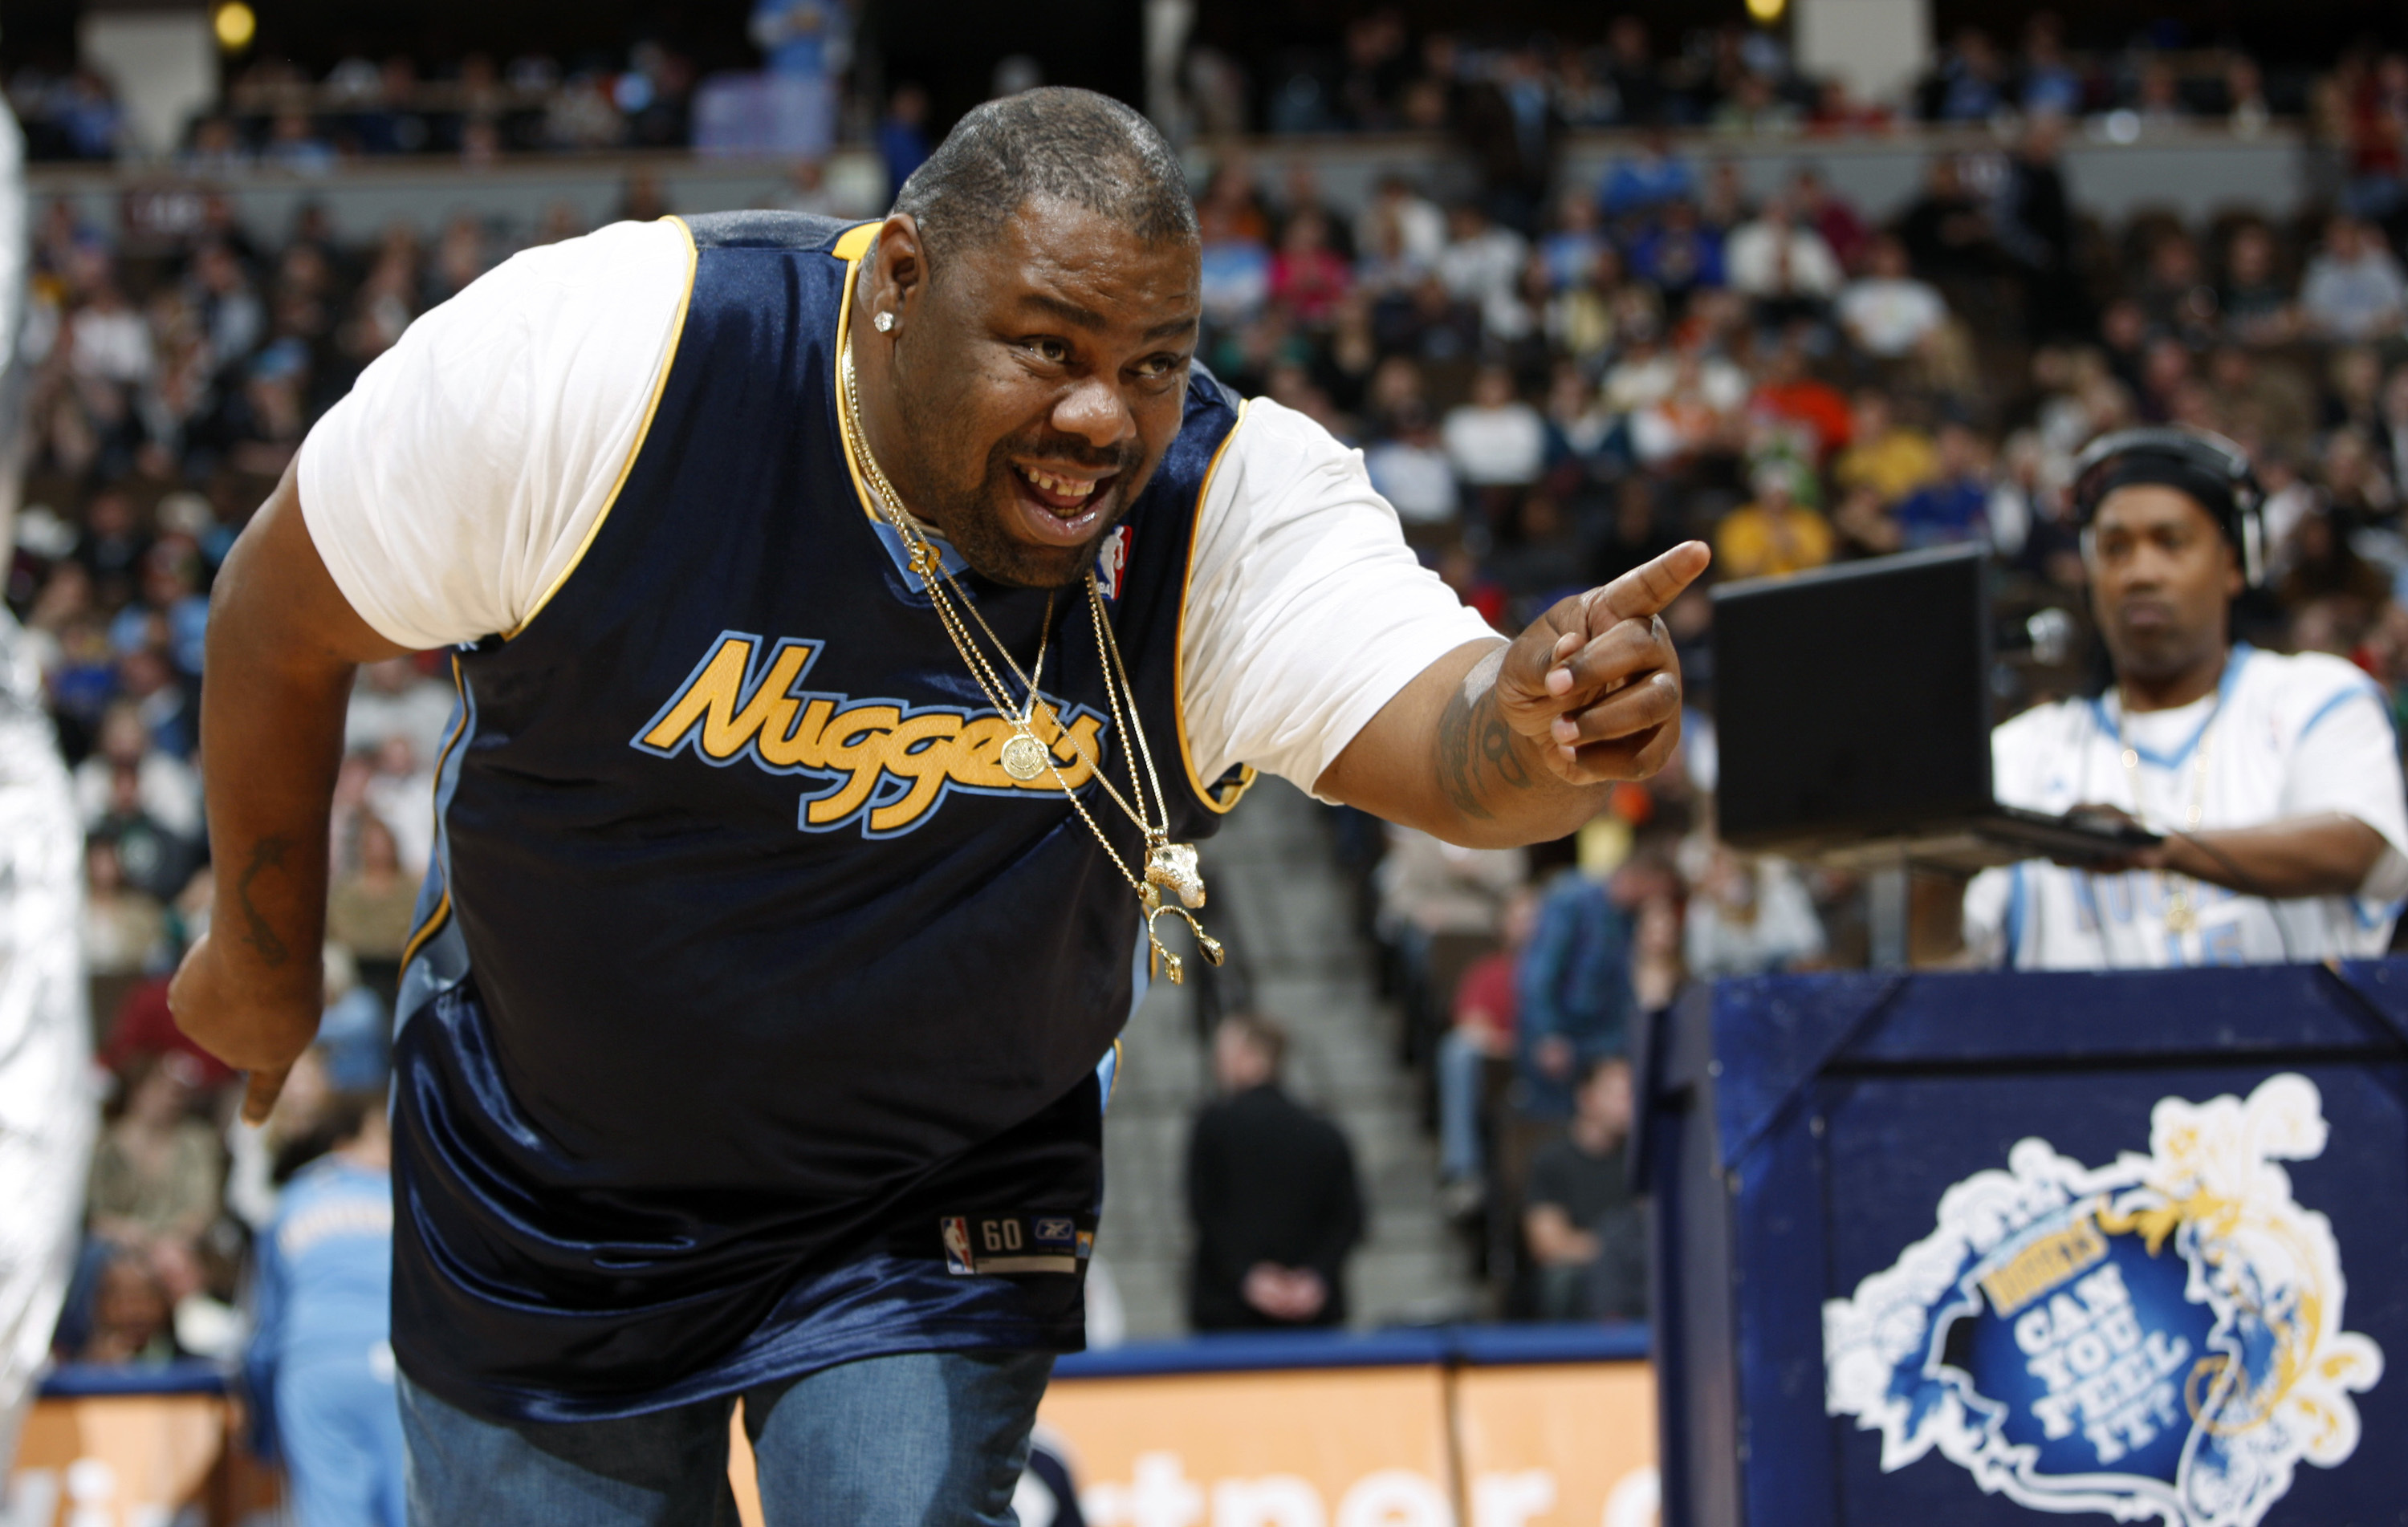 Biz Markie performs for fans during halftime of the Denver Nuggets' 105-99 victory over the Phoenix Suns in an NBA basketball game in Denver, Colorado, on Dec. 12, 2009.